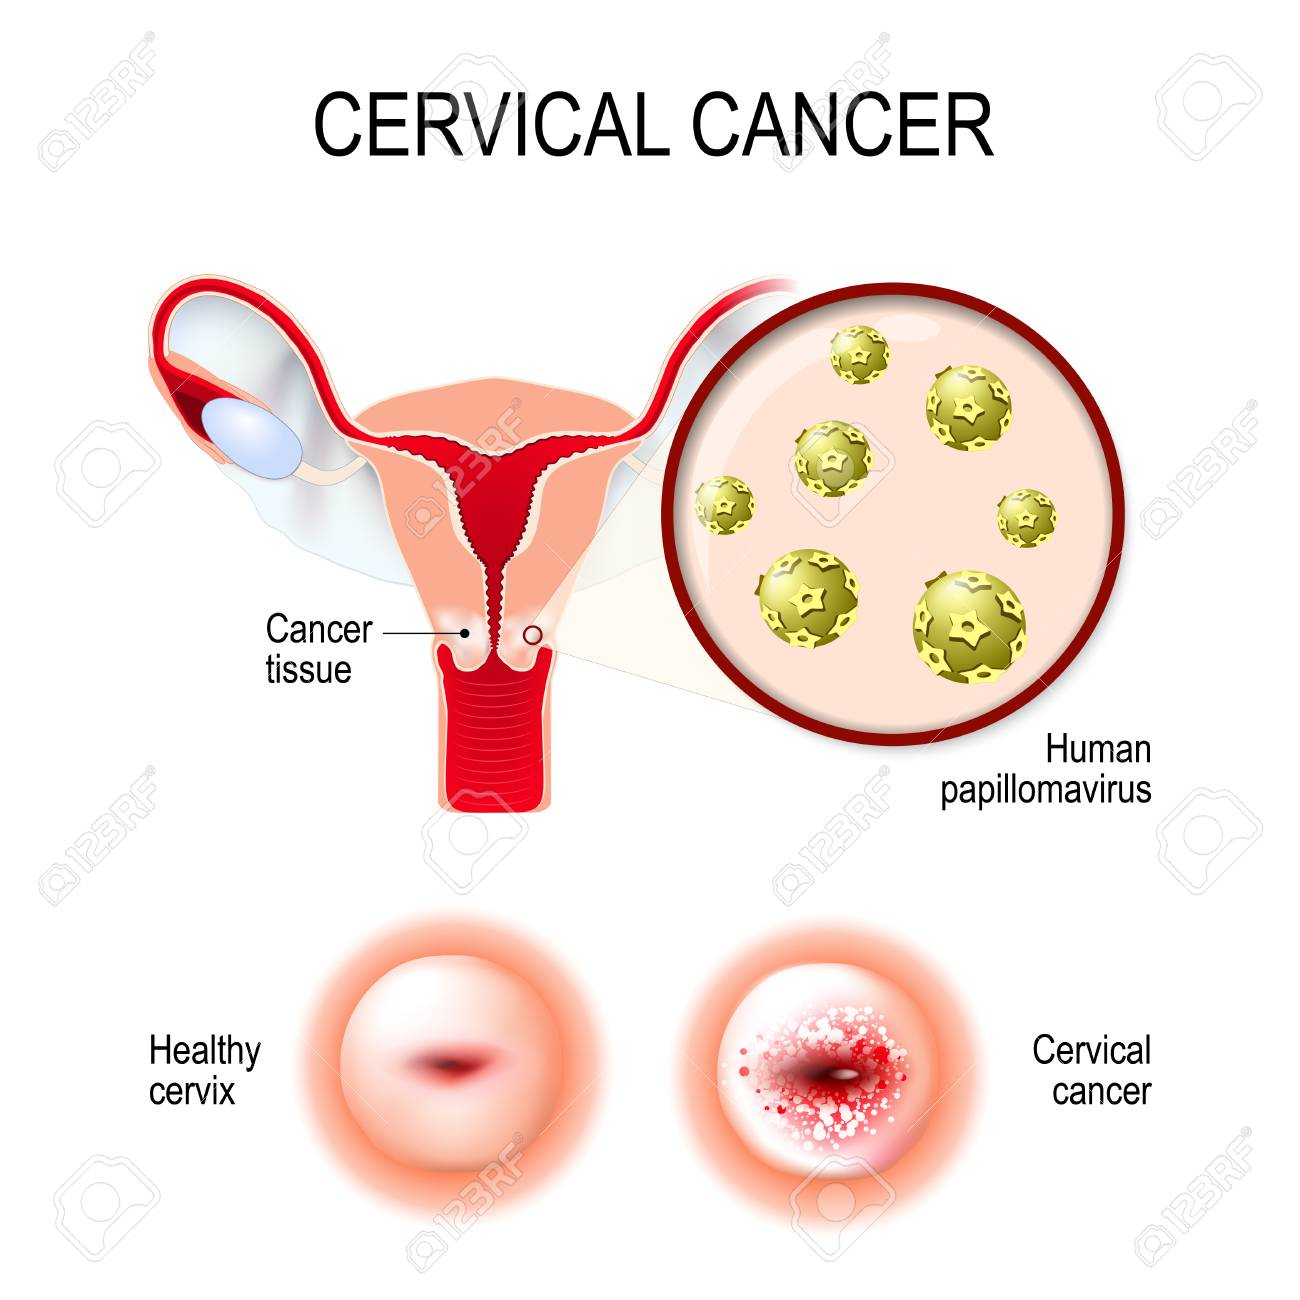 treatment of hpv cervical cancer